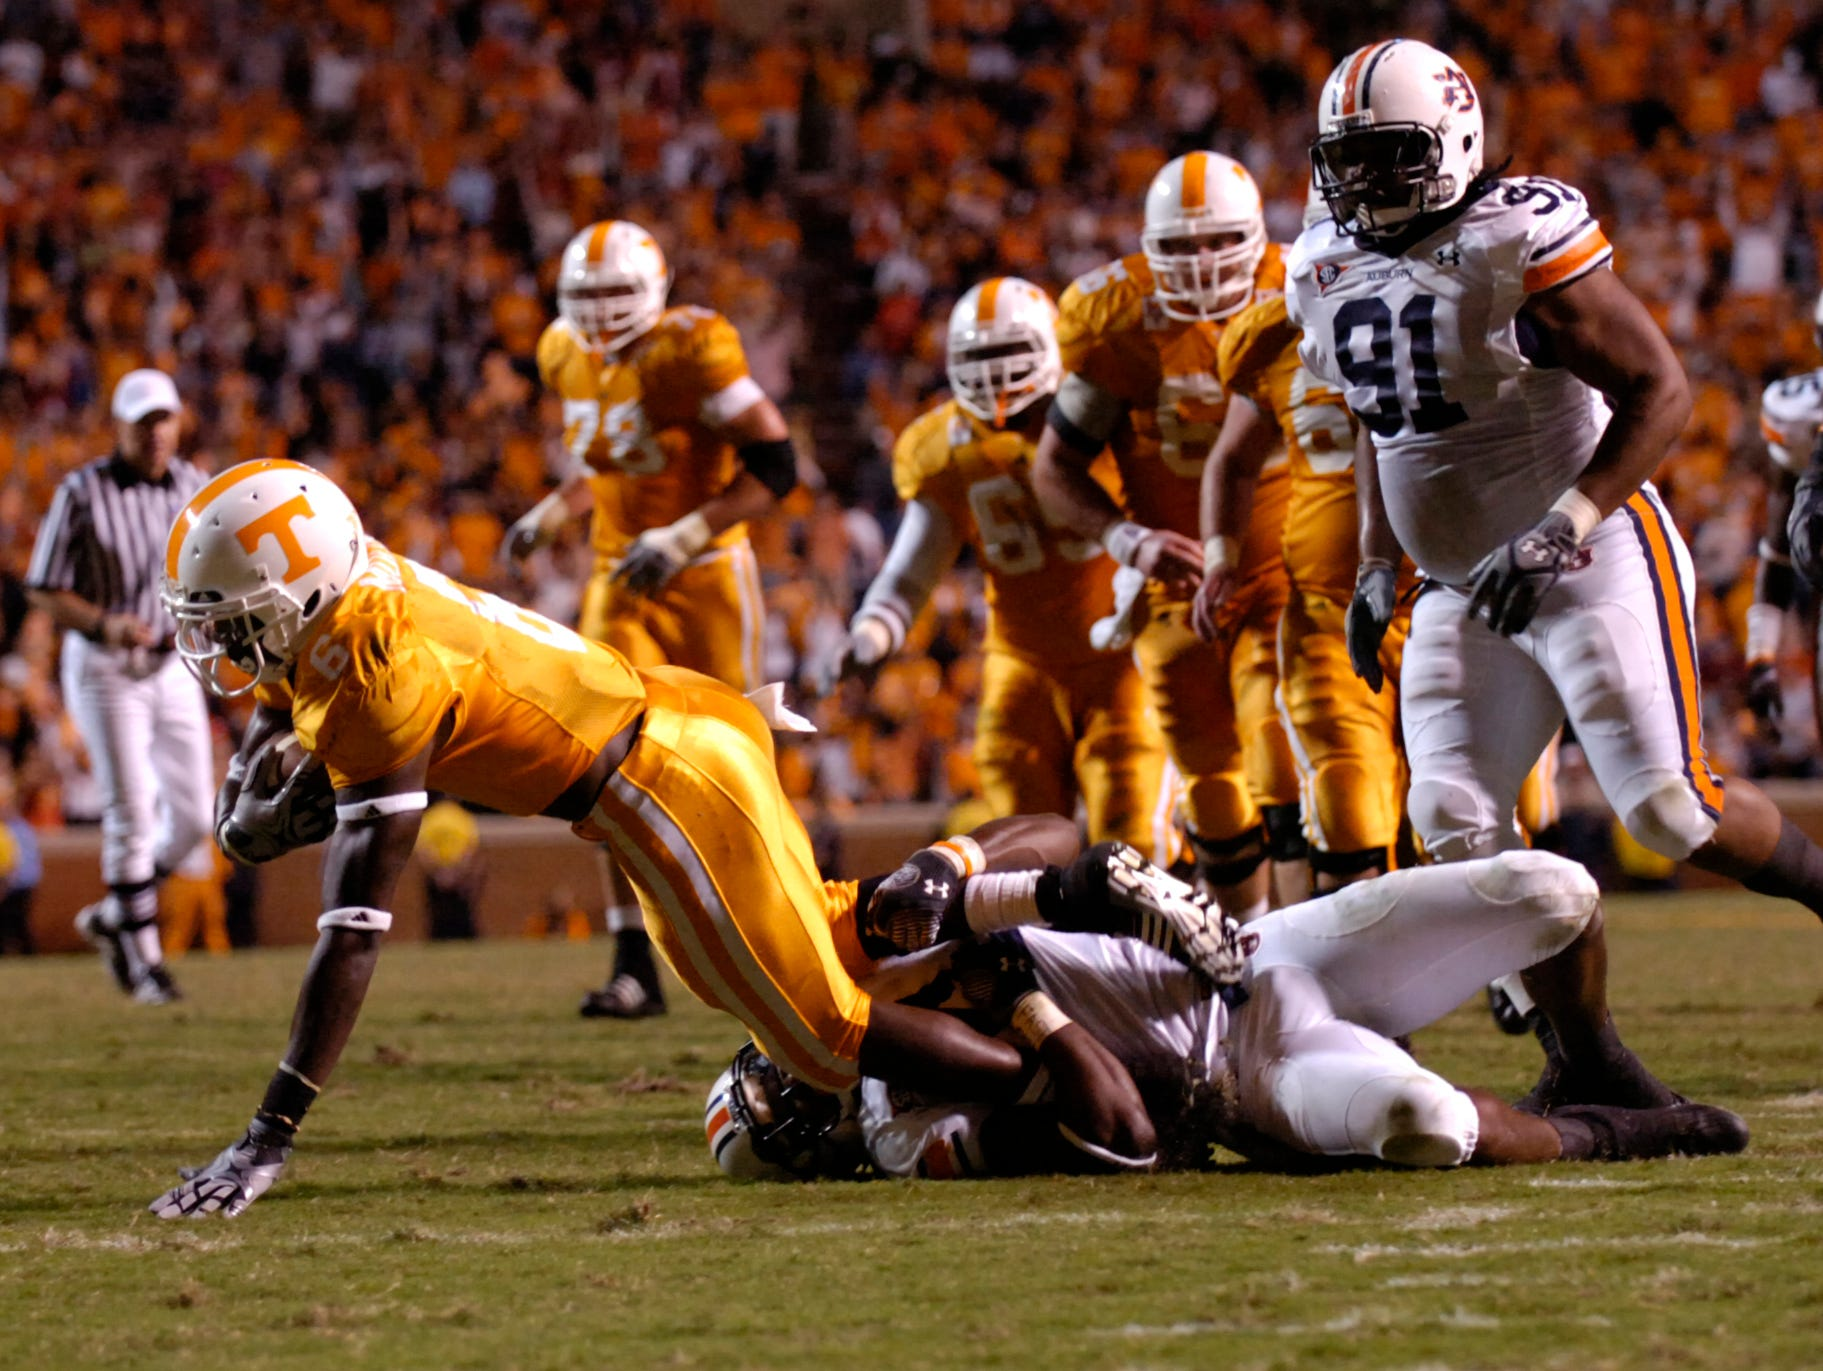 Tennessee wide receiver Denarius Moore (6) is tripped up as he carries the ball against Auburn on Saturday, October 3rd, 2009 at Neyland Stadium. Tennessee lost the game 26-22.